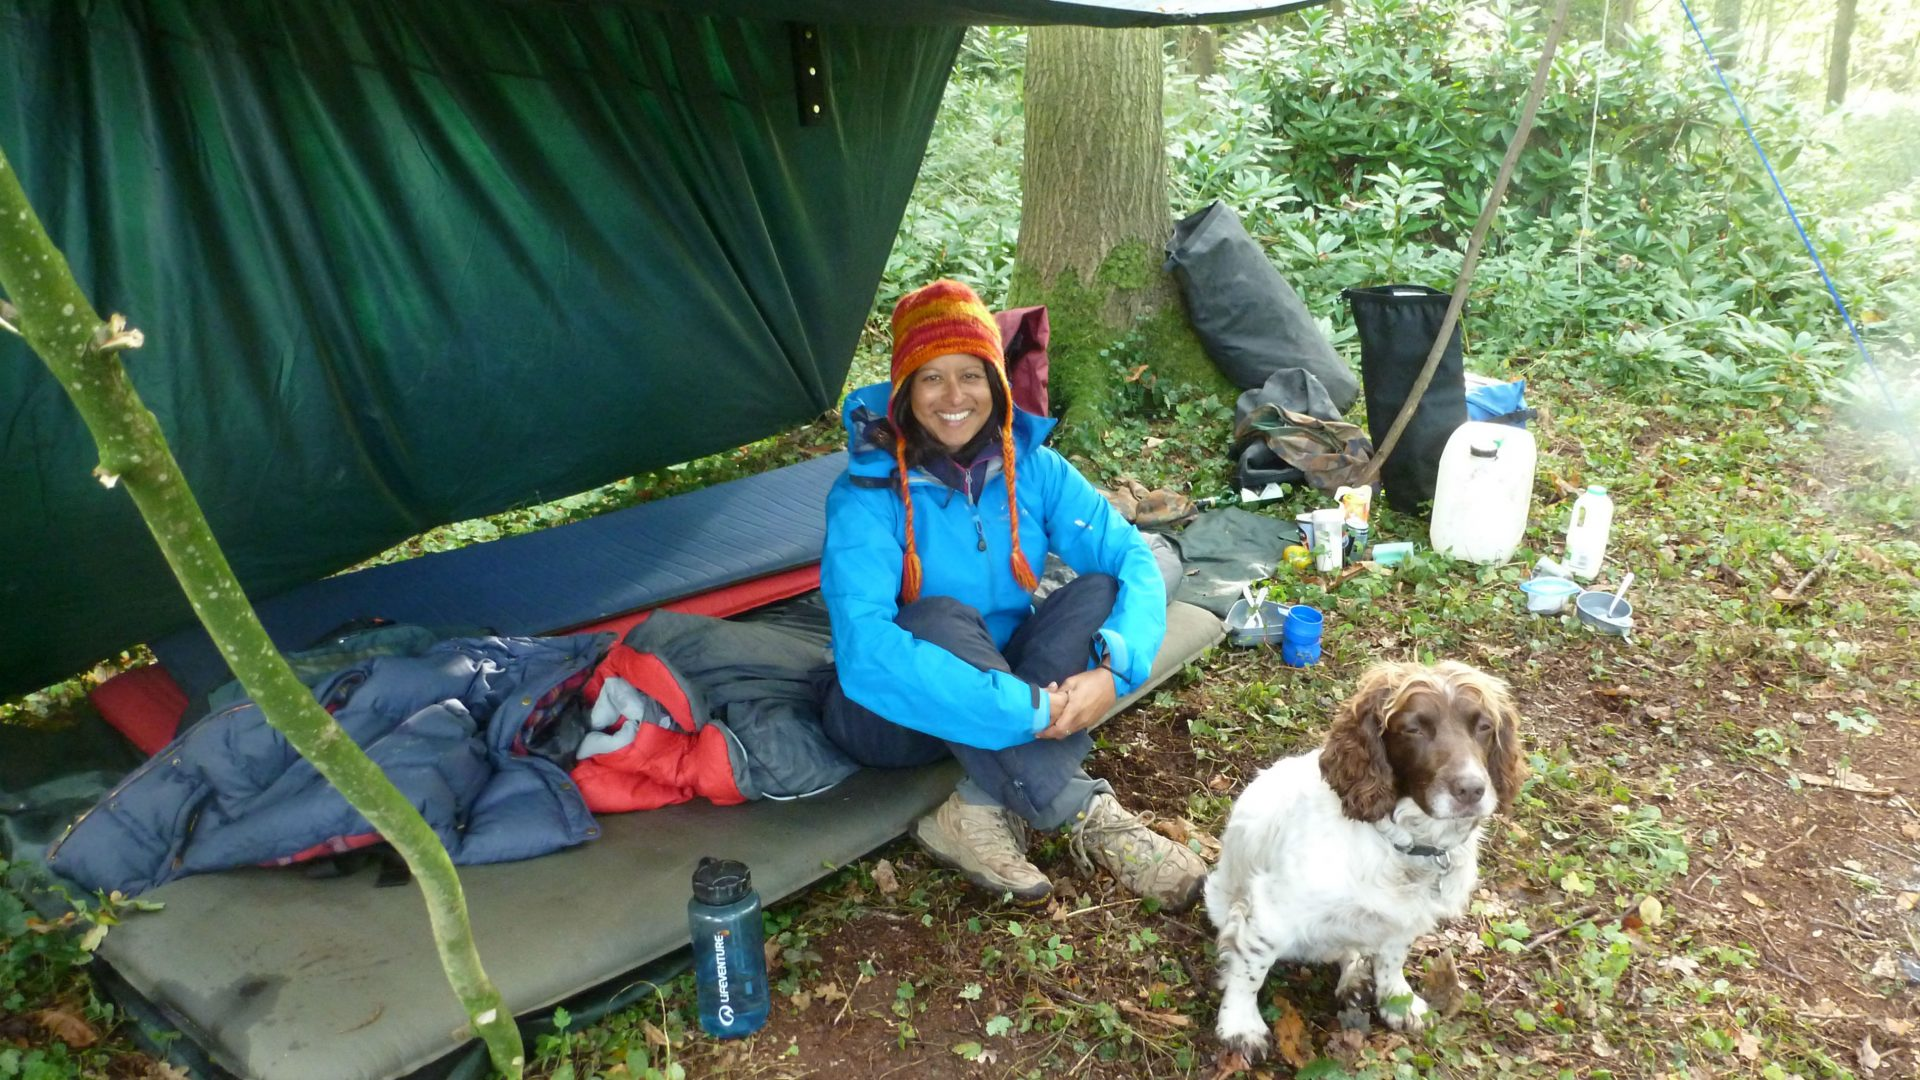 Experiencing nature: After a night of wild camping under the tarp from Slow Paddle in Search of Otters